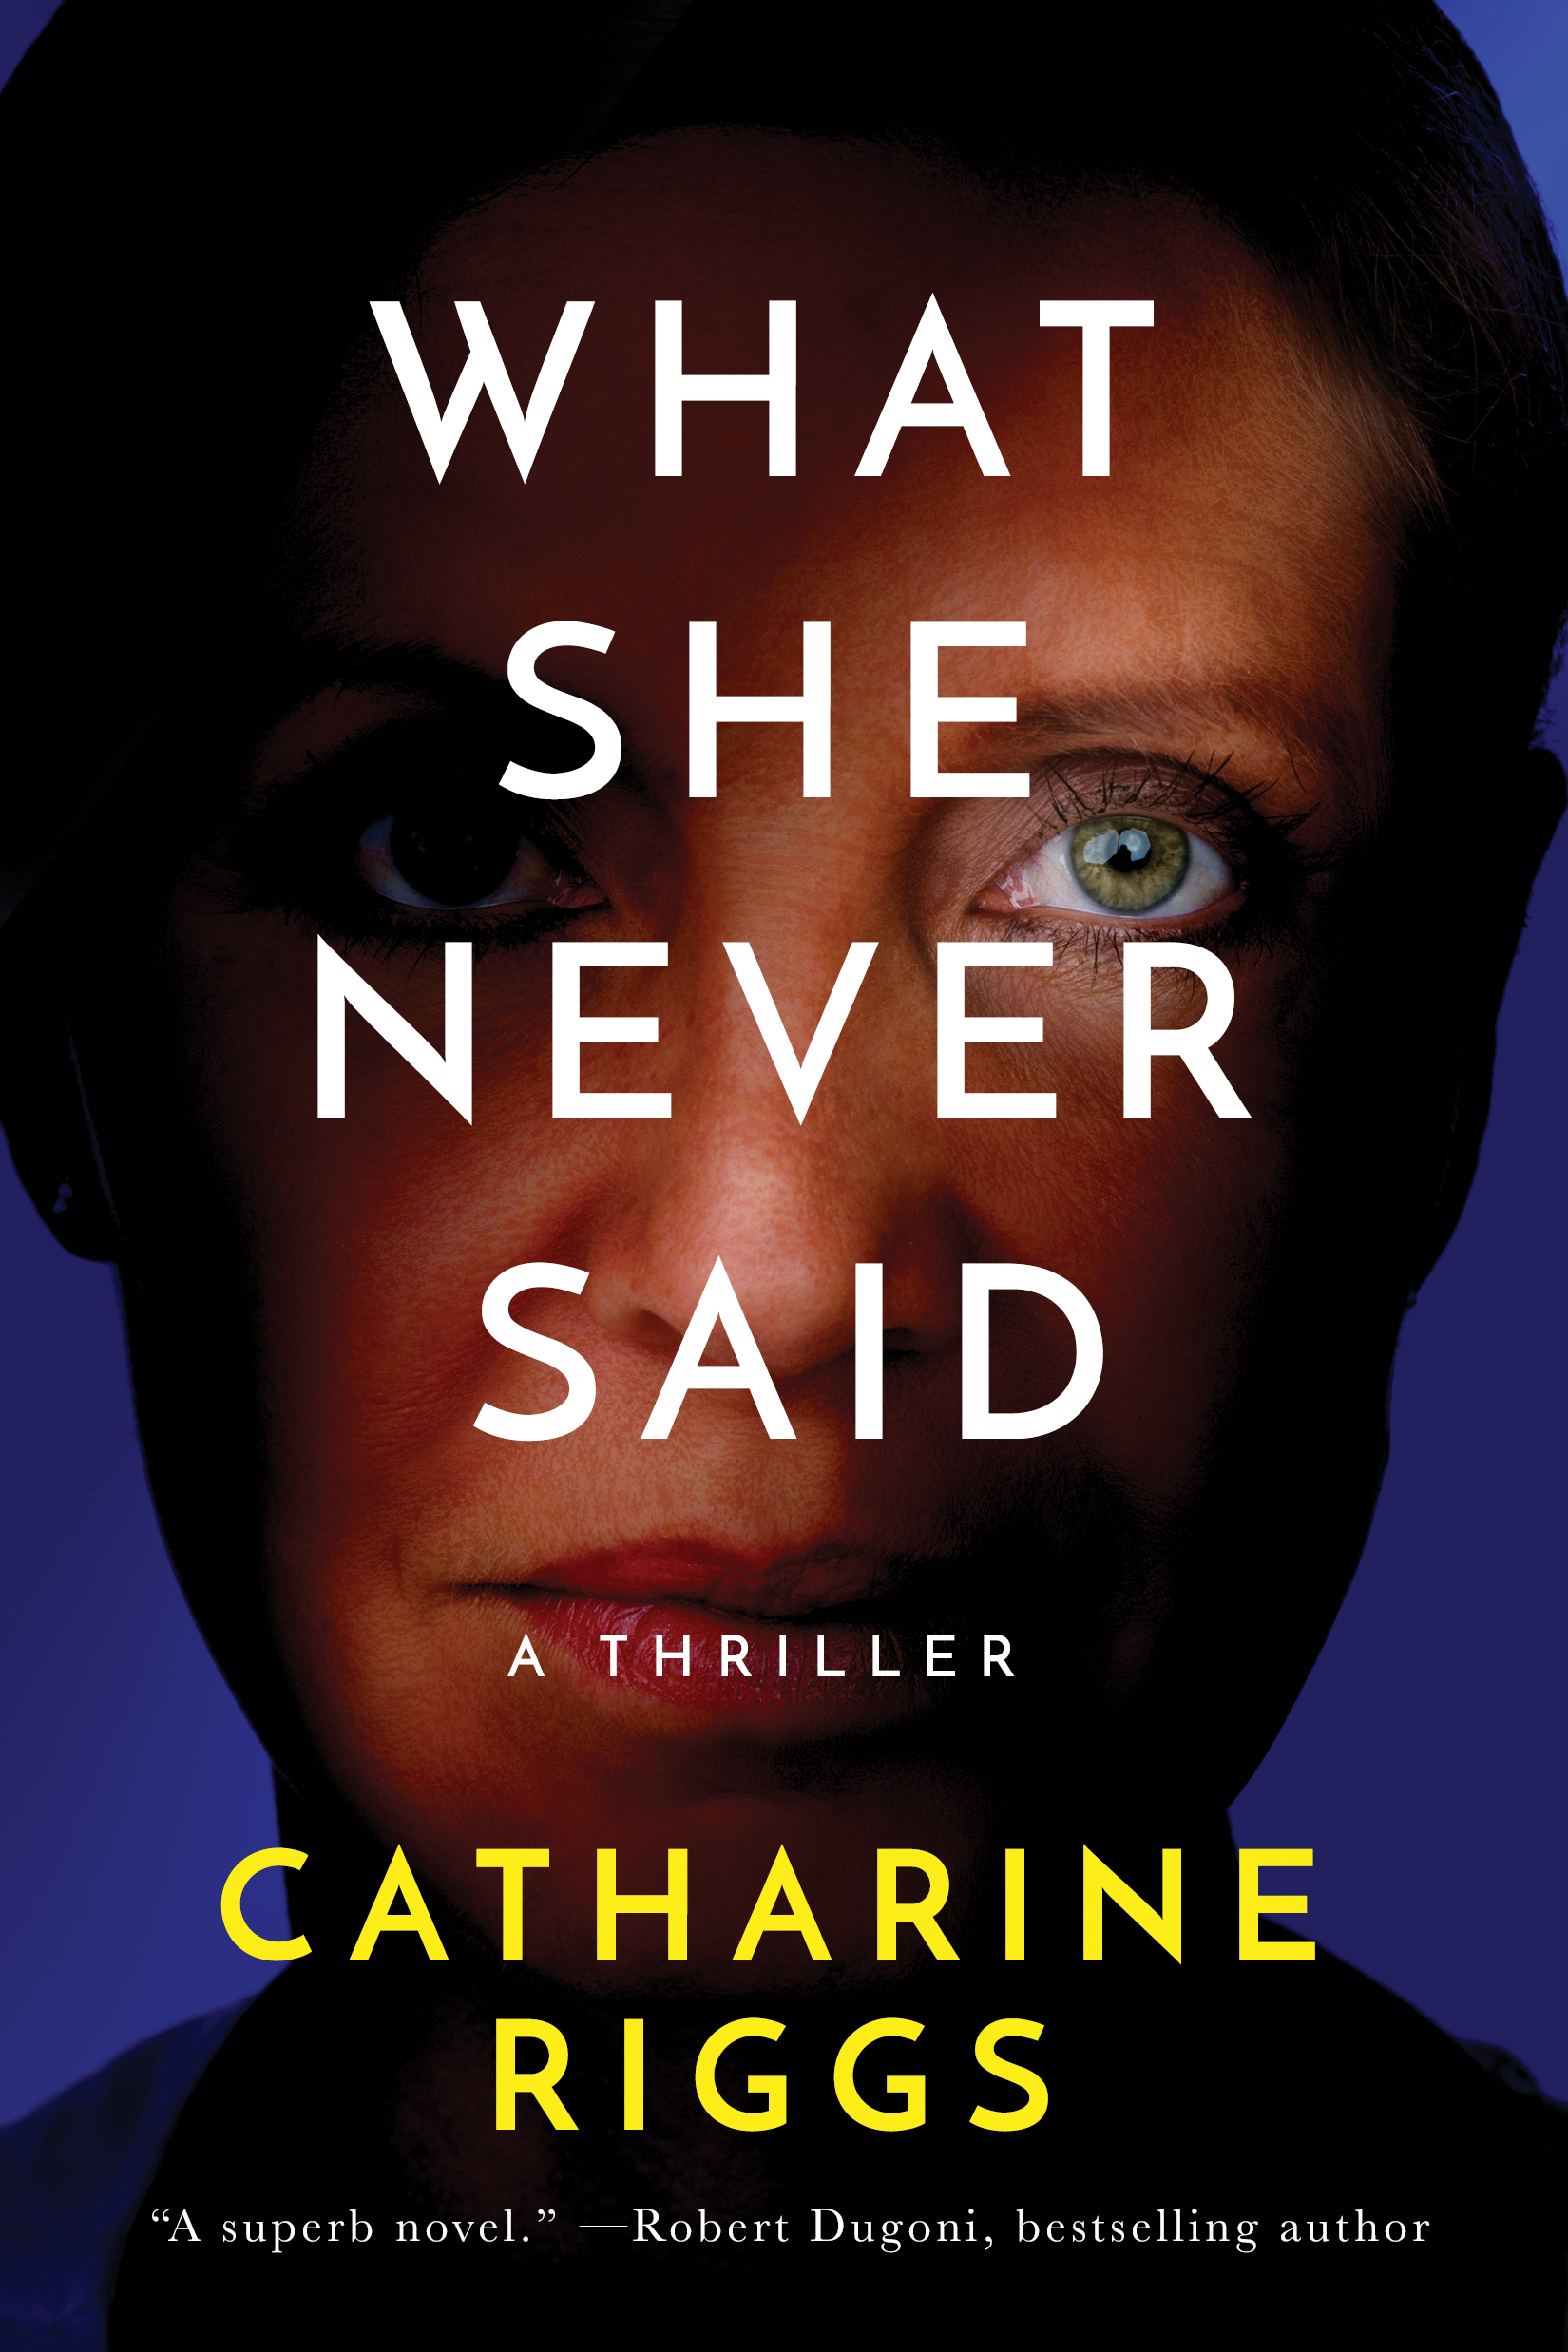 What She Never Said by Catharine Riggs